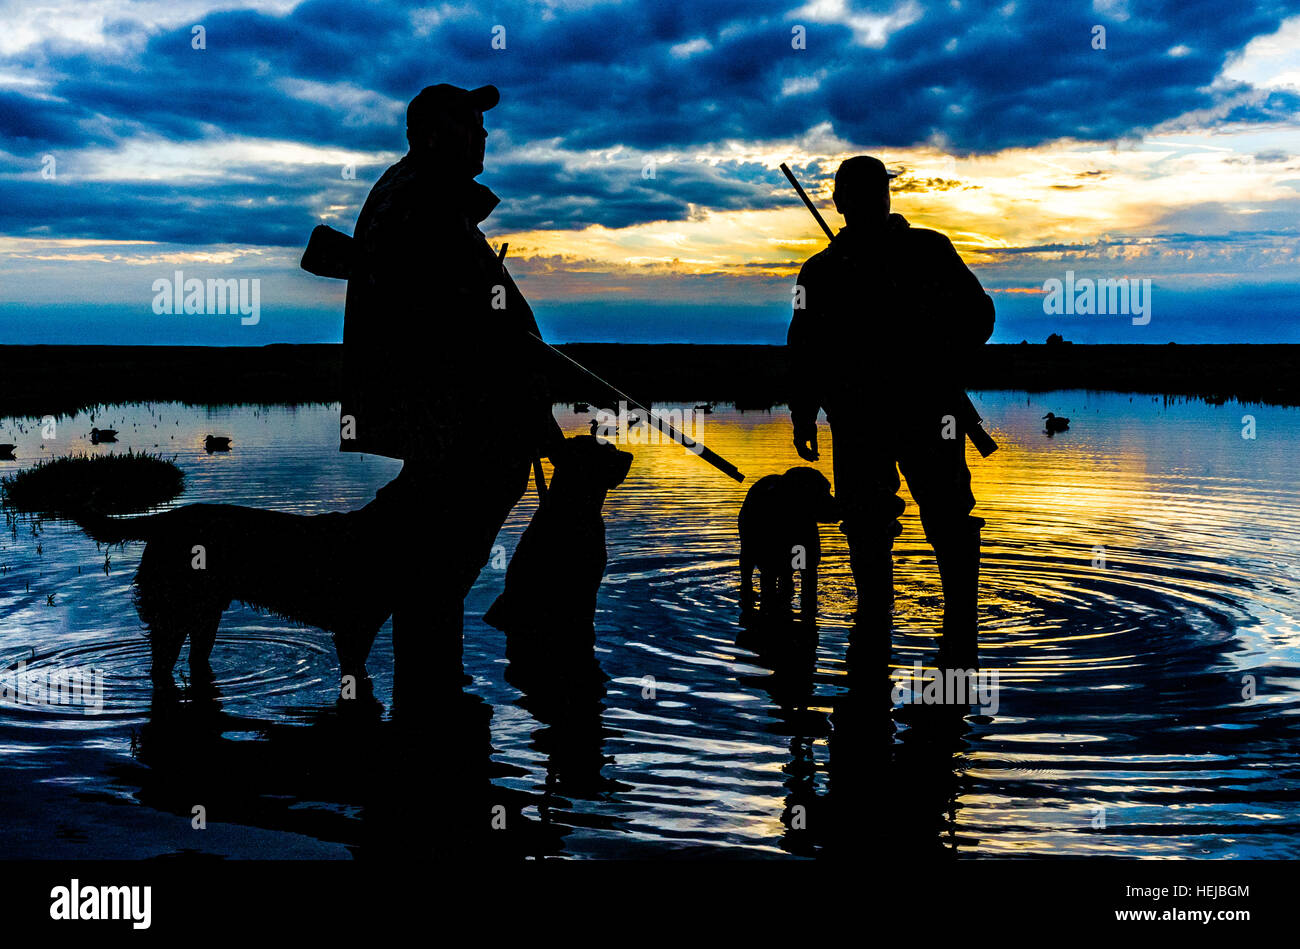 860f9c9a4f084 Silhouette of UK wildfowlers or duck shooters and dogs after a days  shooting on the marshes